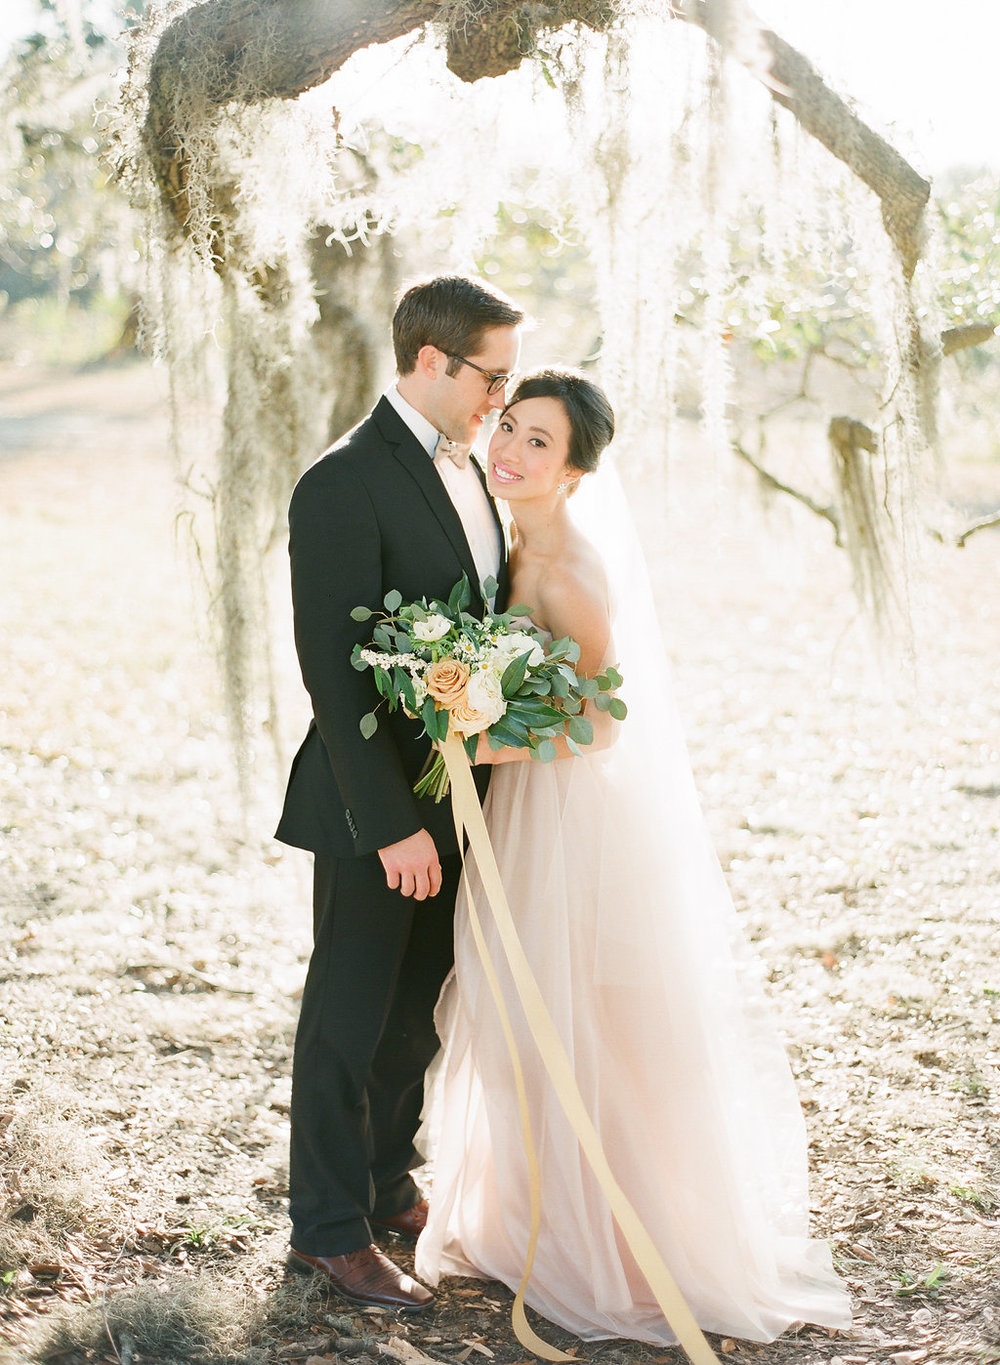 the-happy-bloom-design-studio-south-wormsloe-plantation-wedding-sarah-seven-blushing-ivory-and-beau-bridal-boutique-savannah-wedding-dresses-savannah-bridal-boutique-savannah-weddings-savannah-wedding-planner-savannah-event-planner-2.jpg